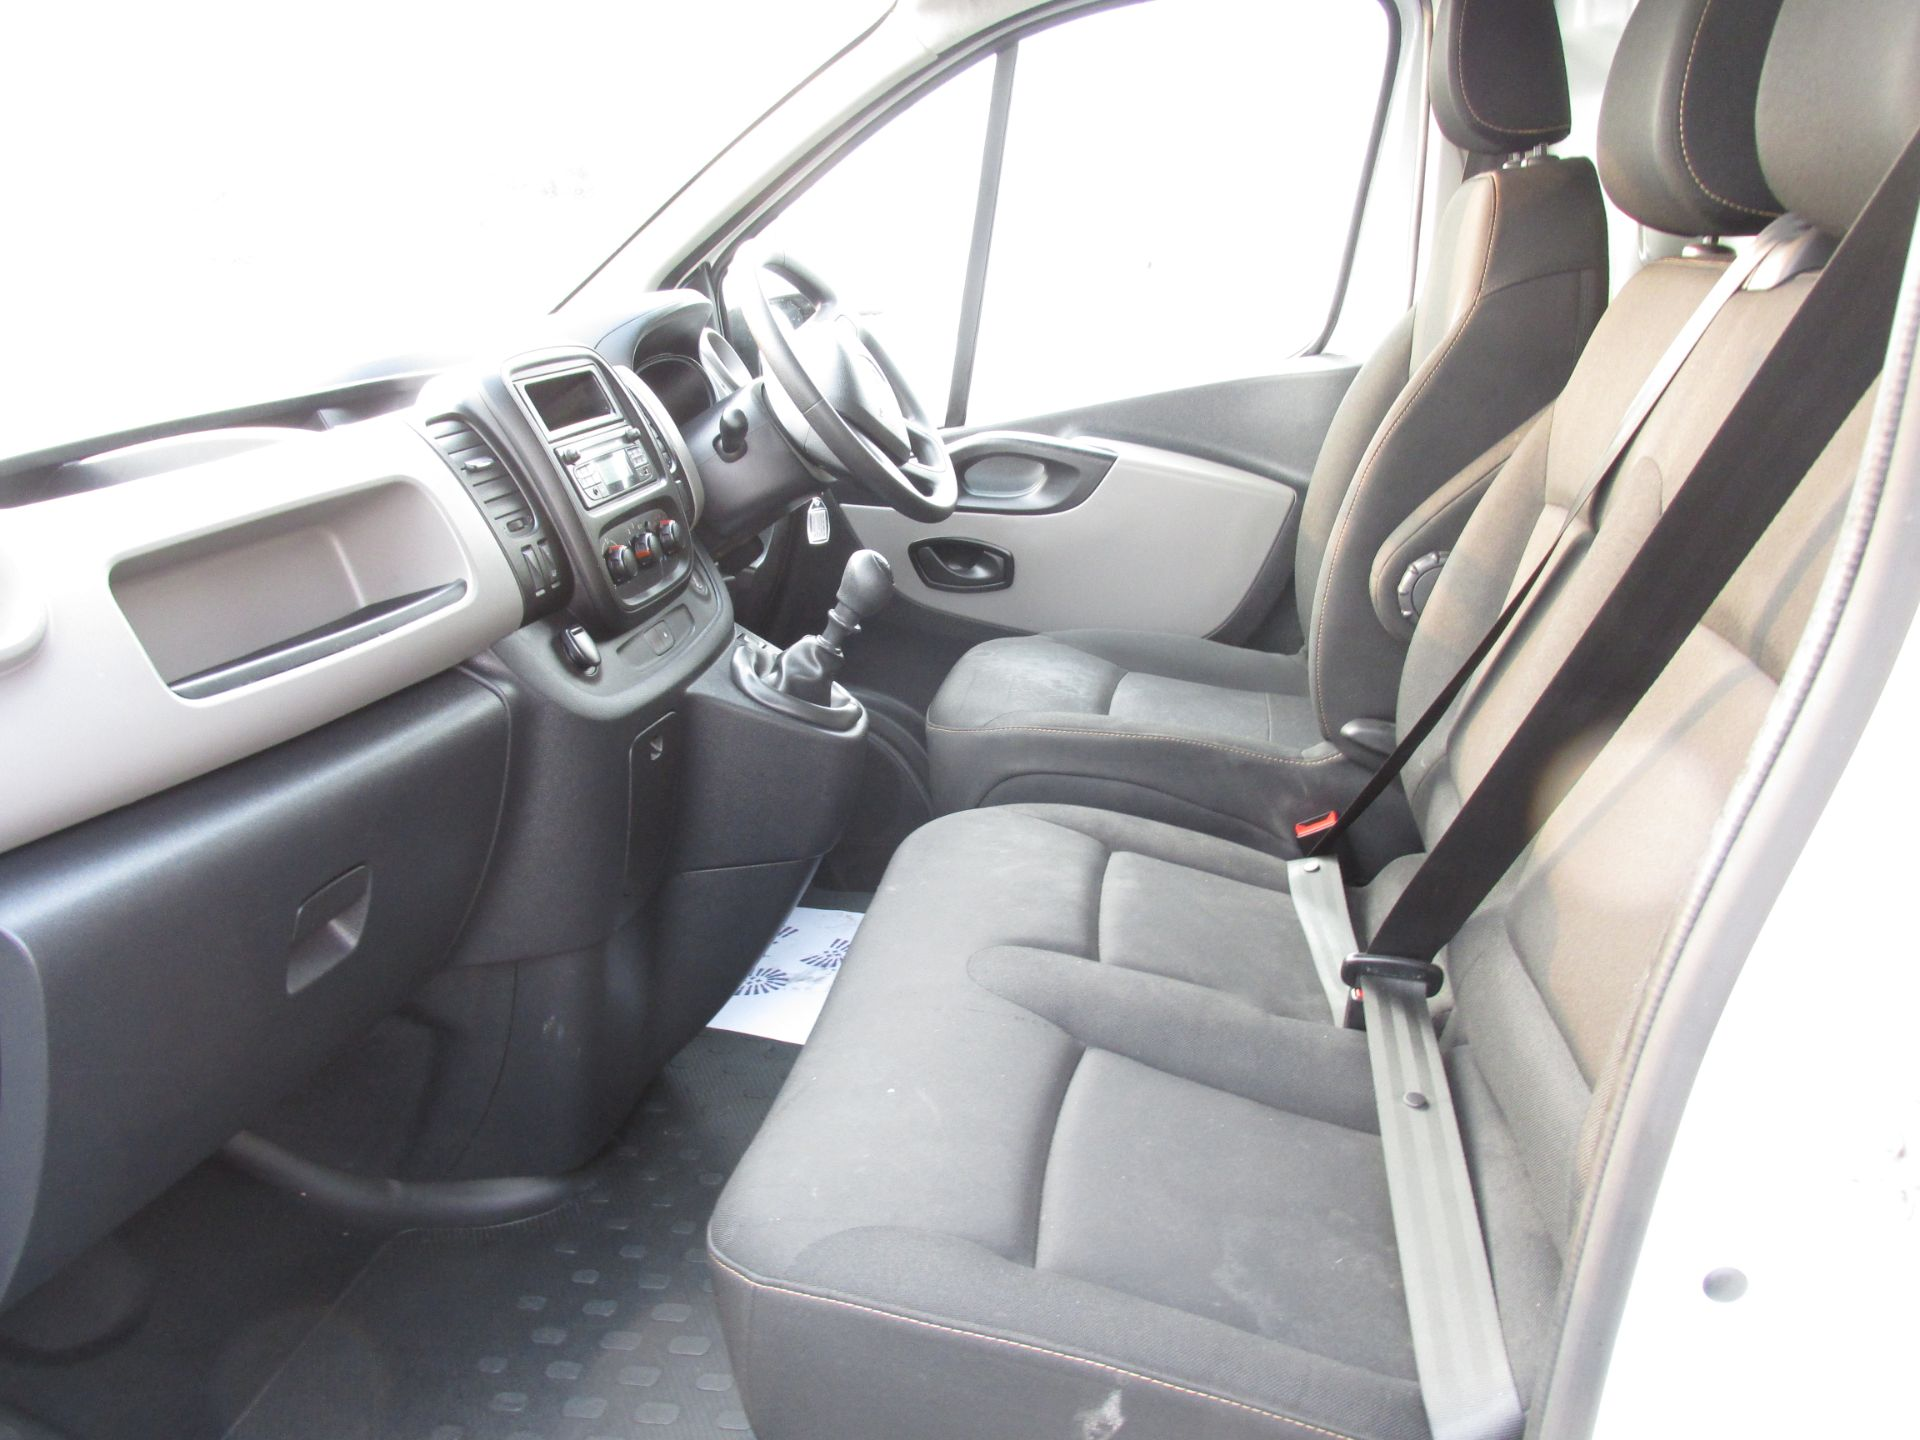 2017 Renault Trafic LL29 DCI 120 Business 3DR (171D23115) Image 11